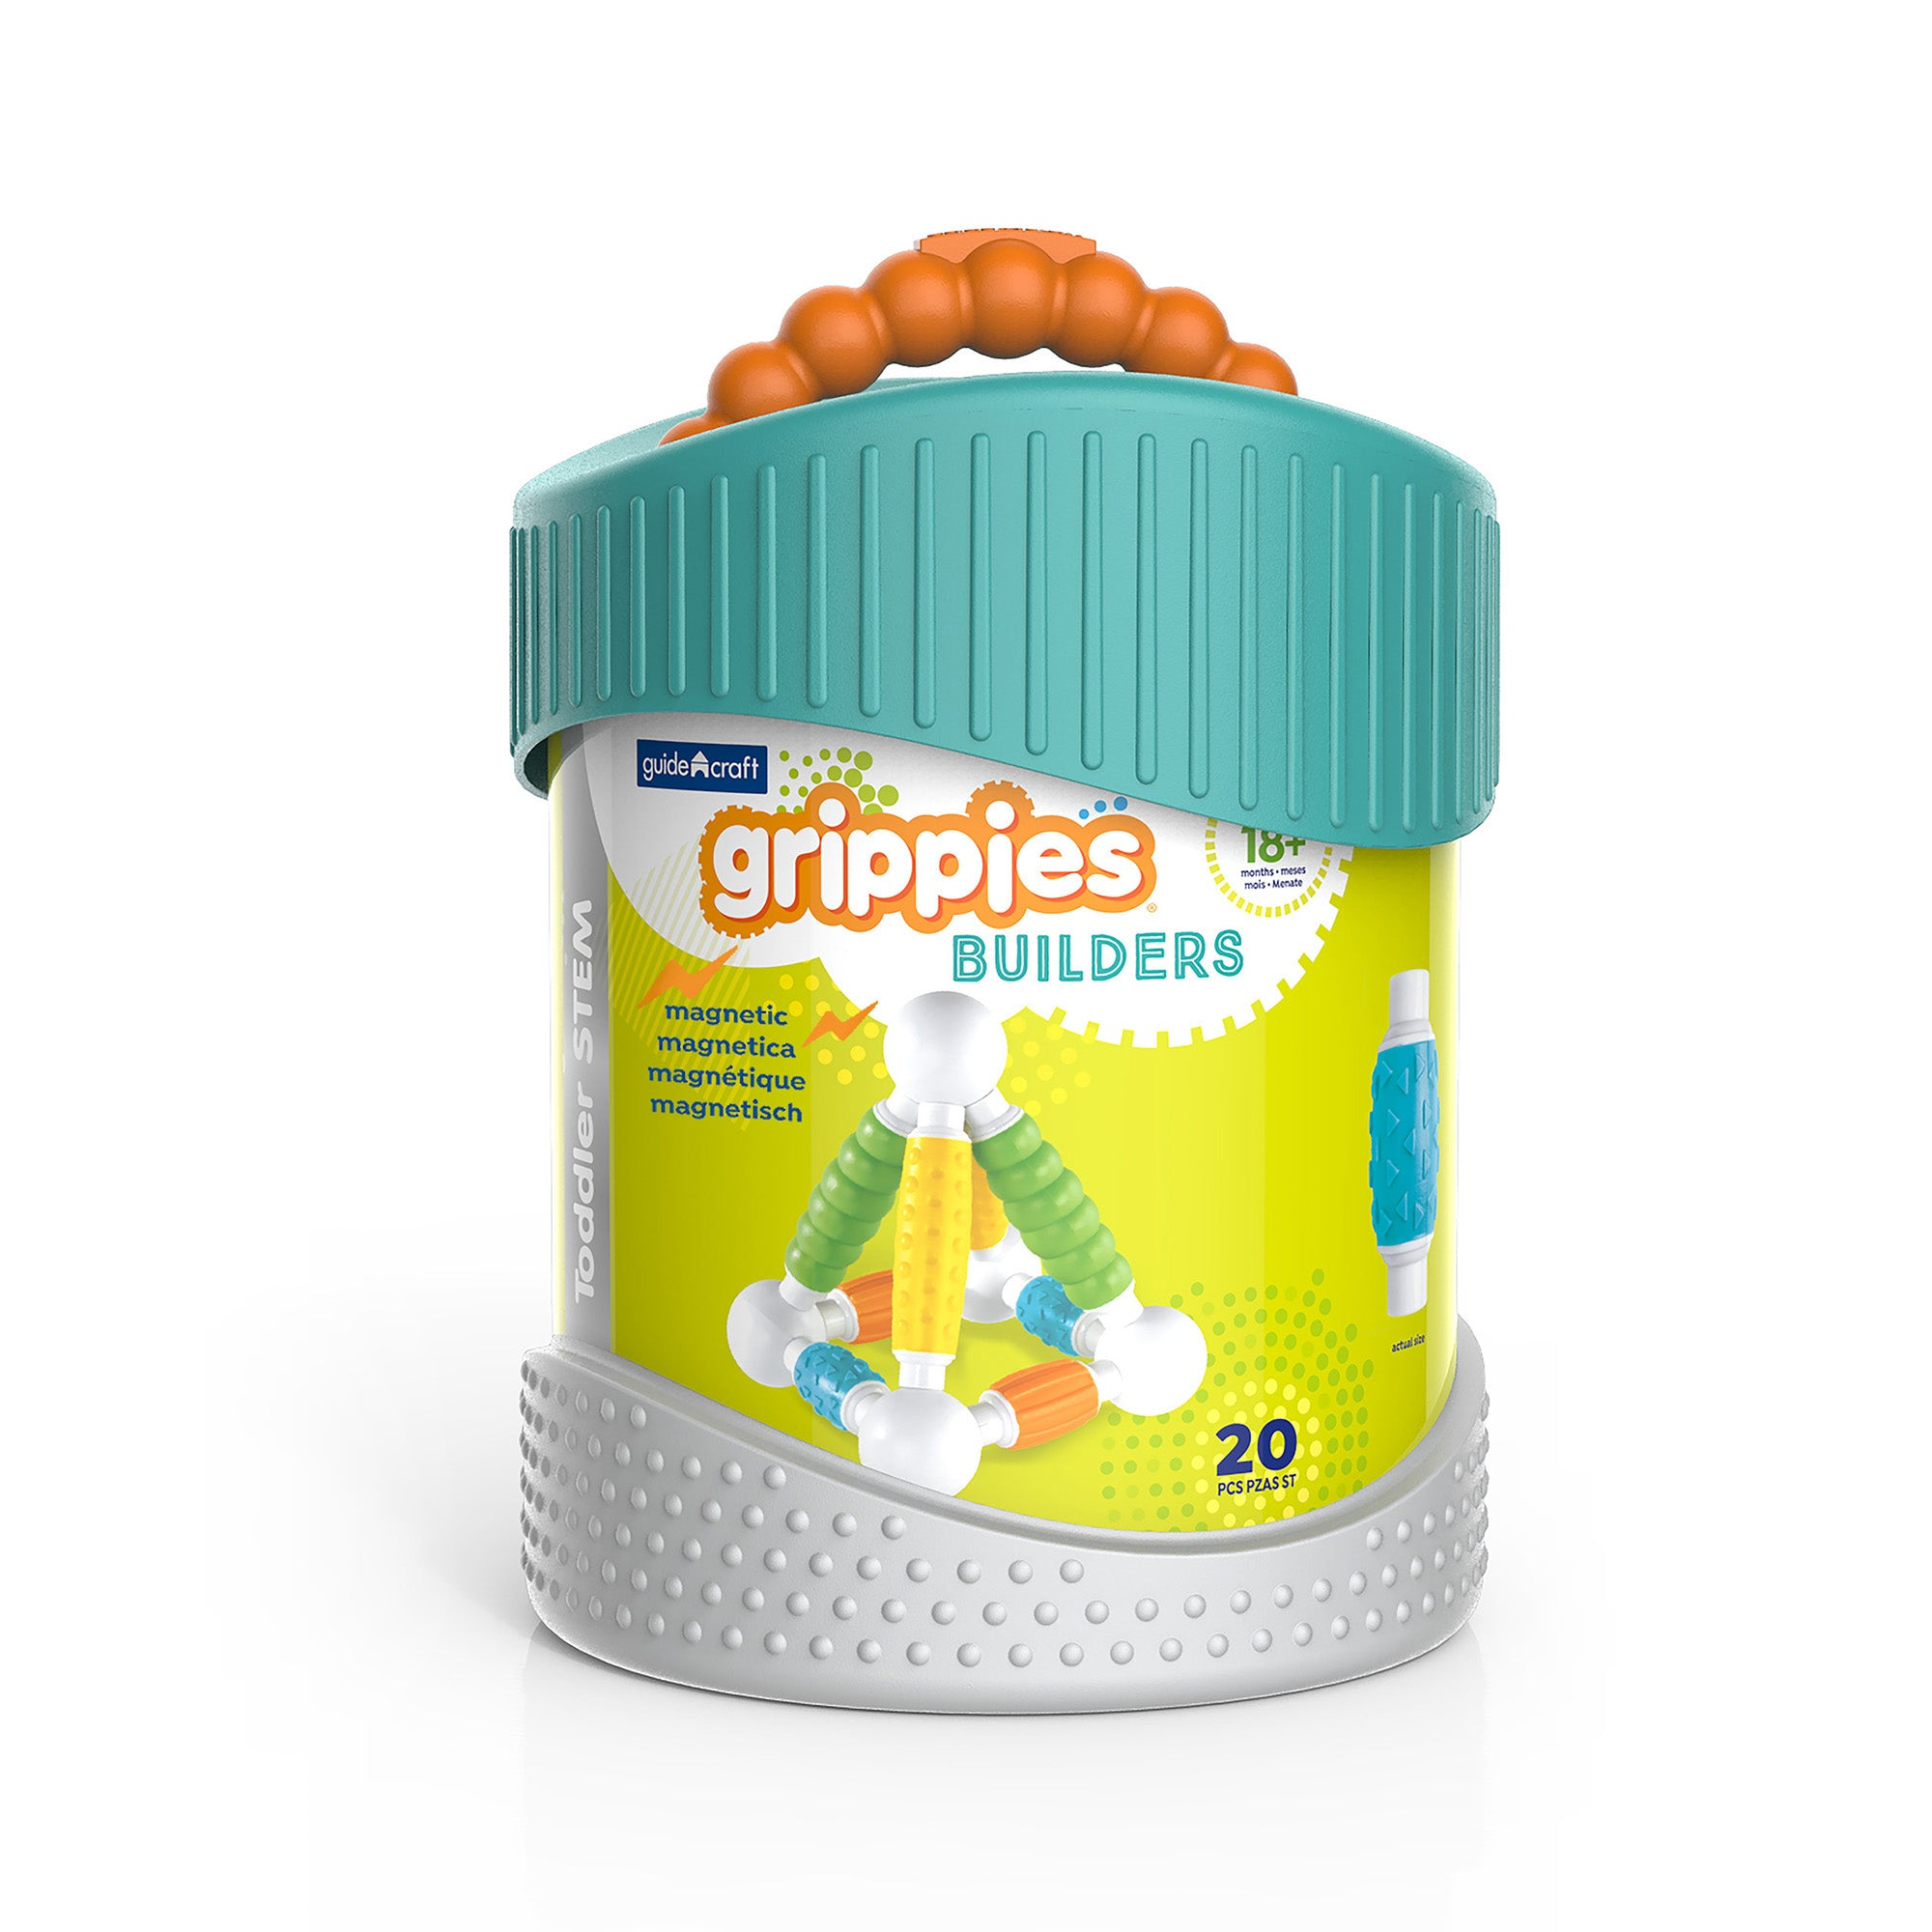 Grippies® Builders, 20 Piece Set